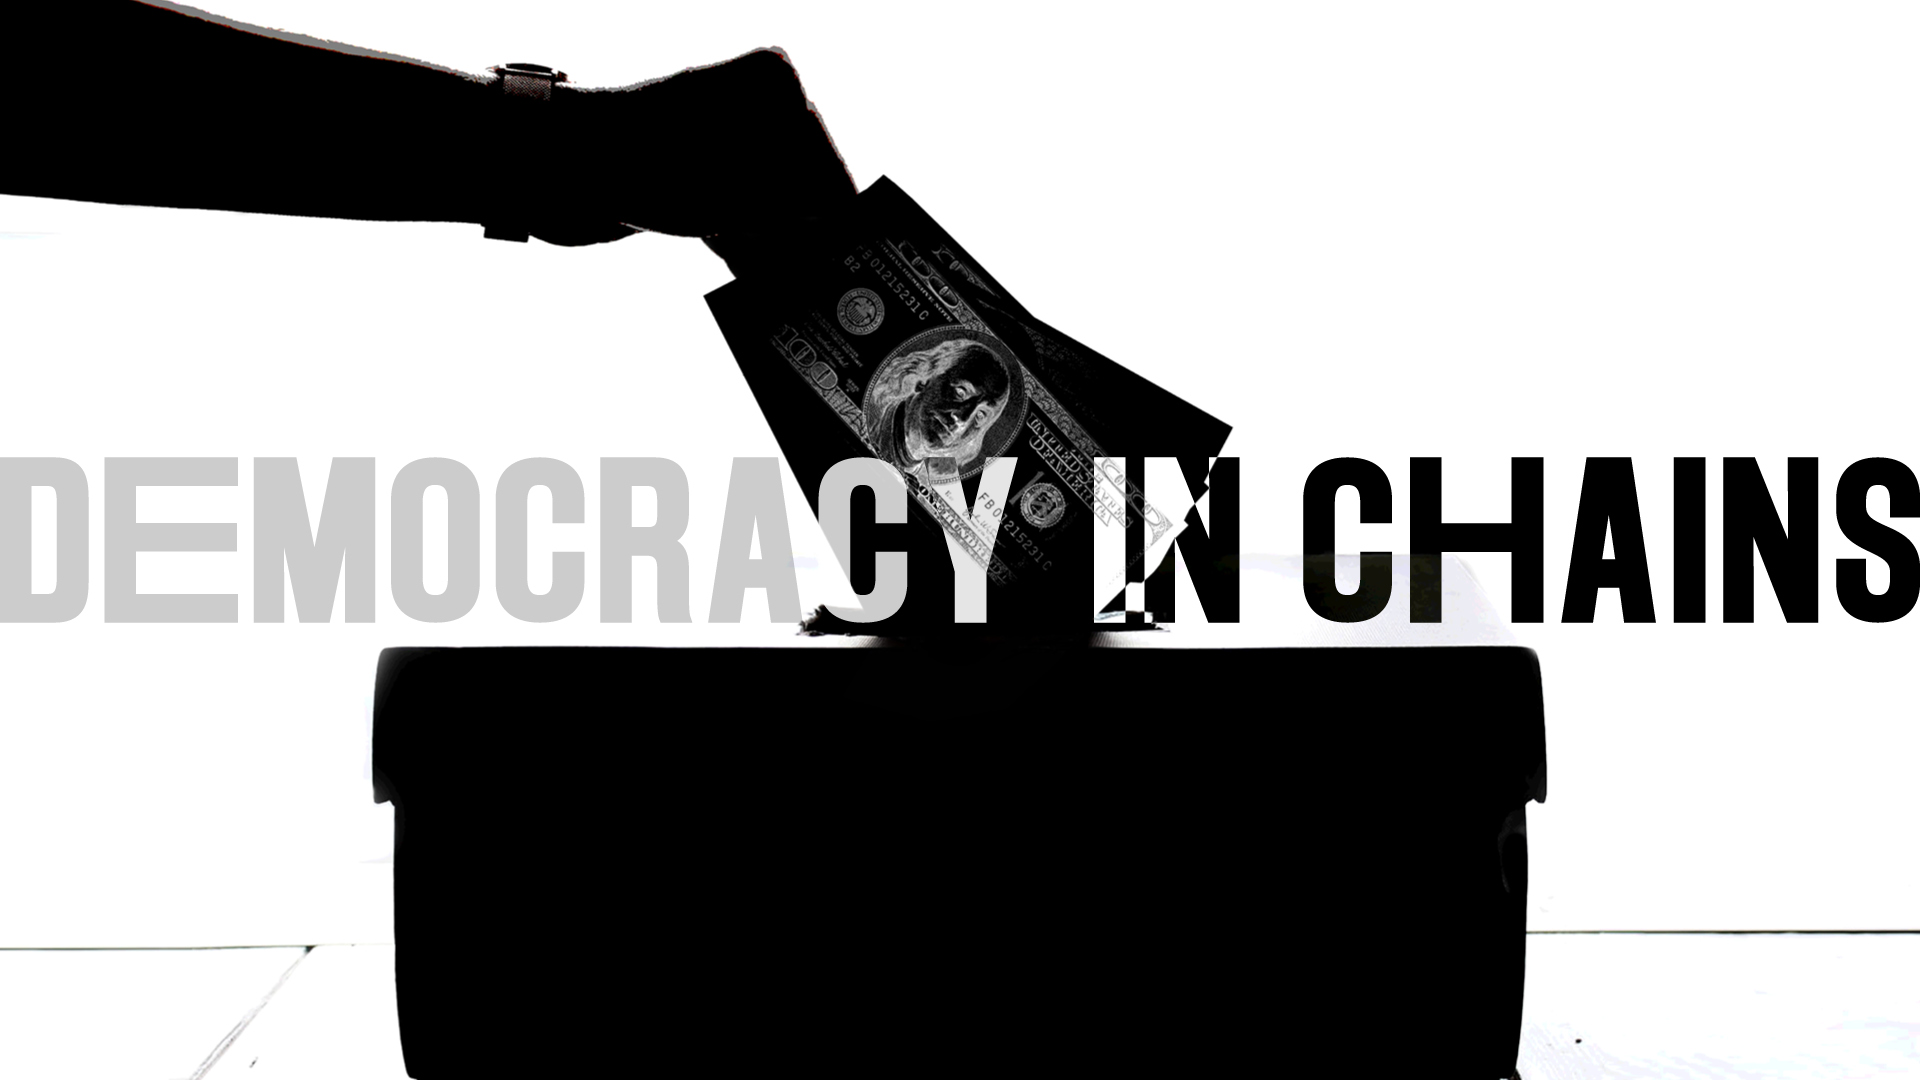 Democracy conceptual graphic